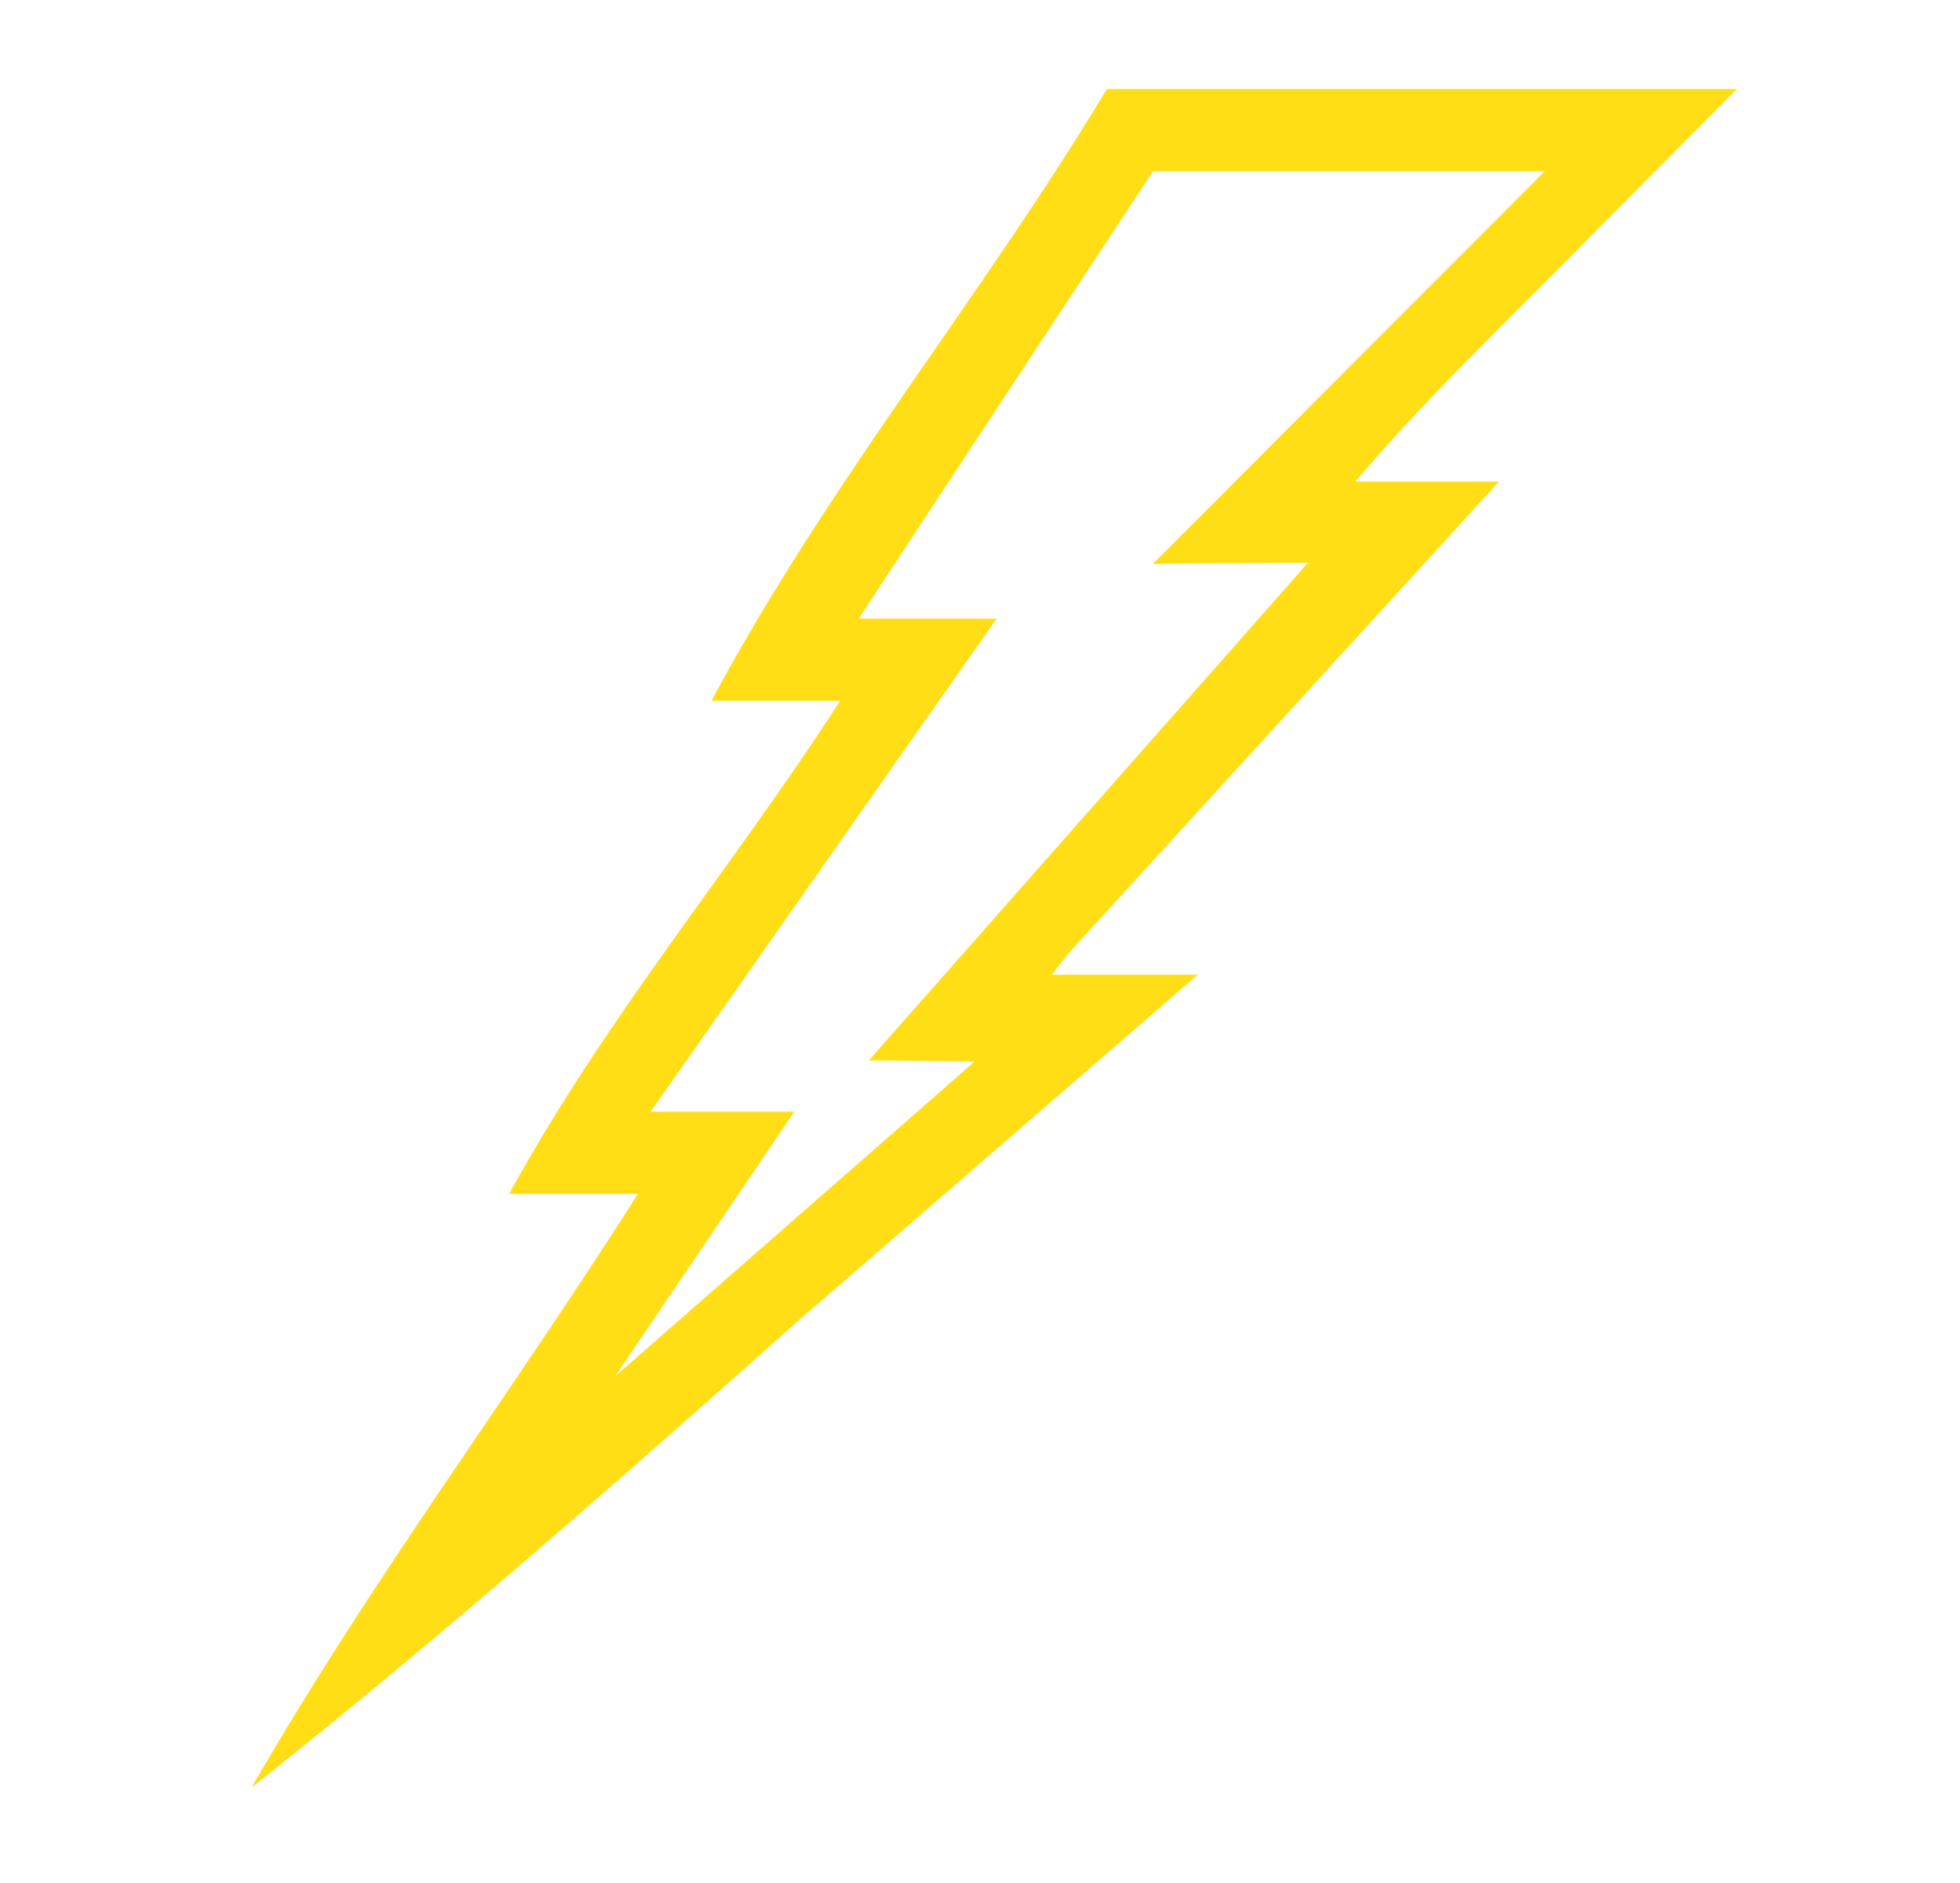 Weather - Lightning Bolt | The Teehive - PNG Lighting Bolt